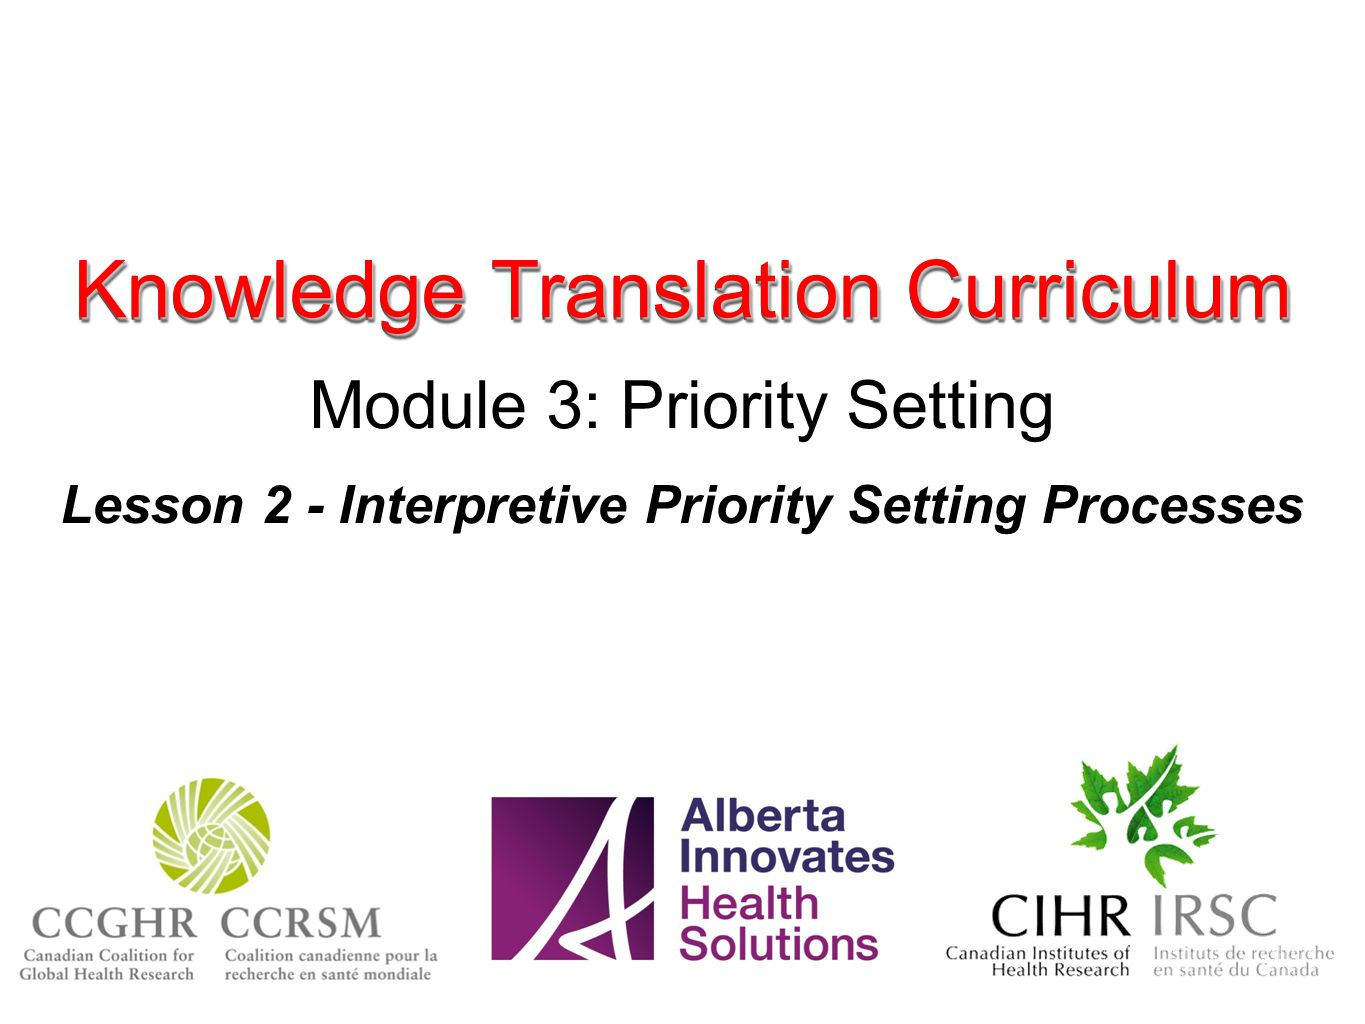 Knowledge Translation Curriculum Module 3: Priority Setting Lesson 2 - Interpretive Priority Setting Processes